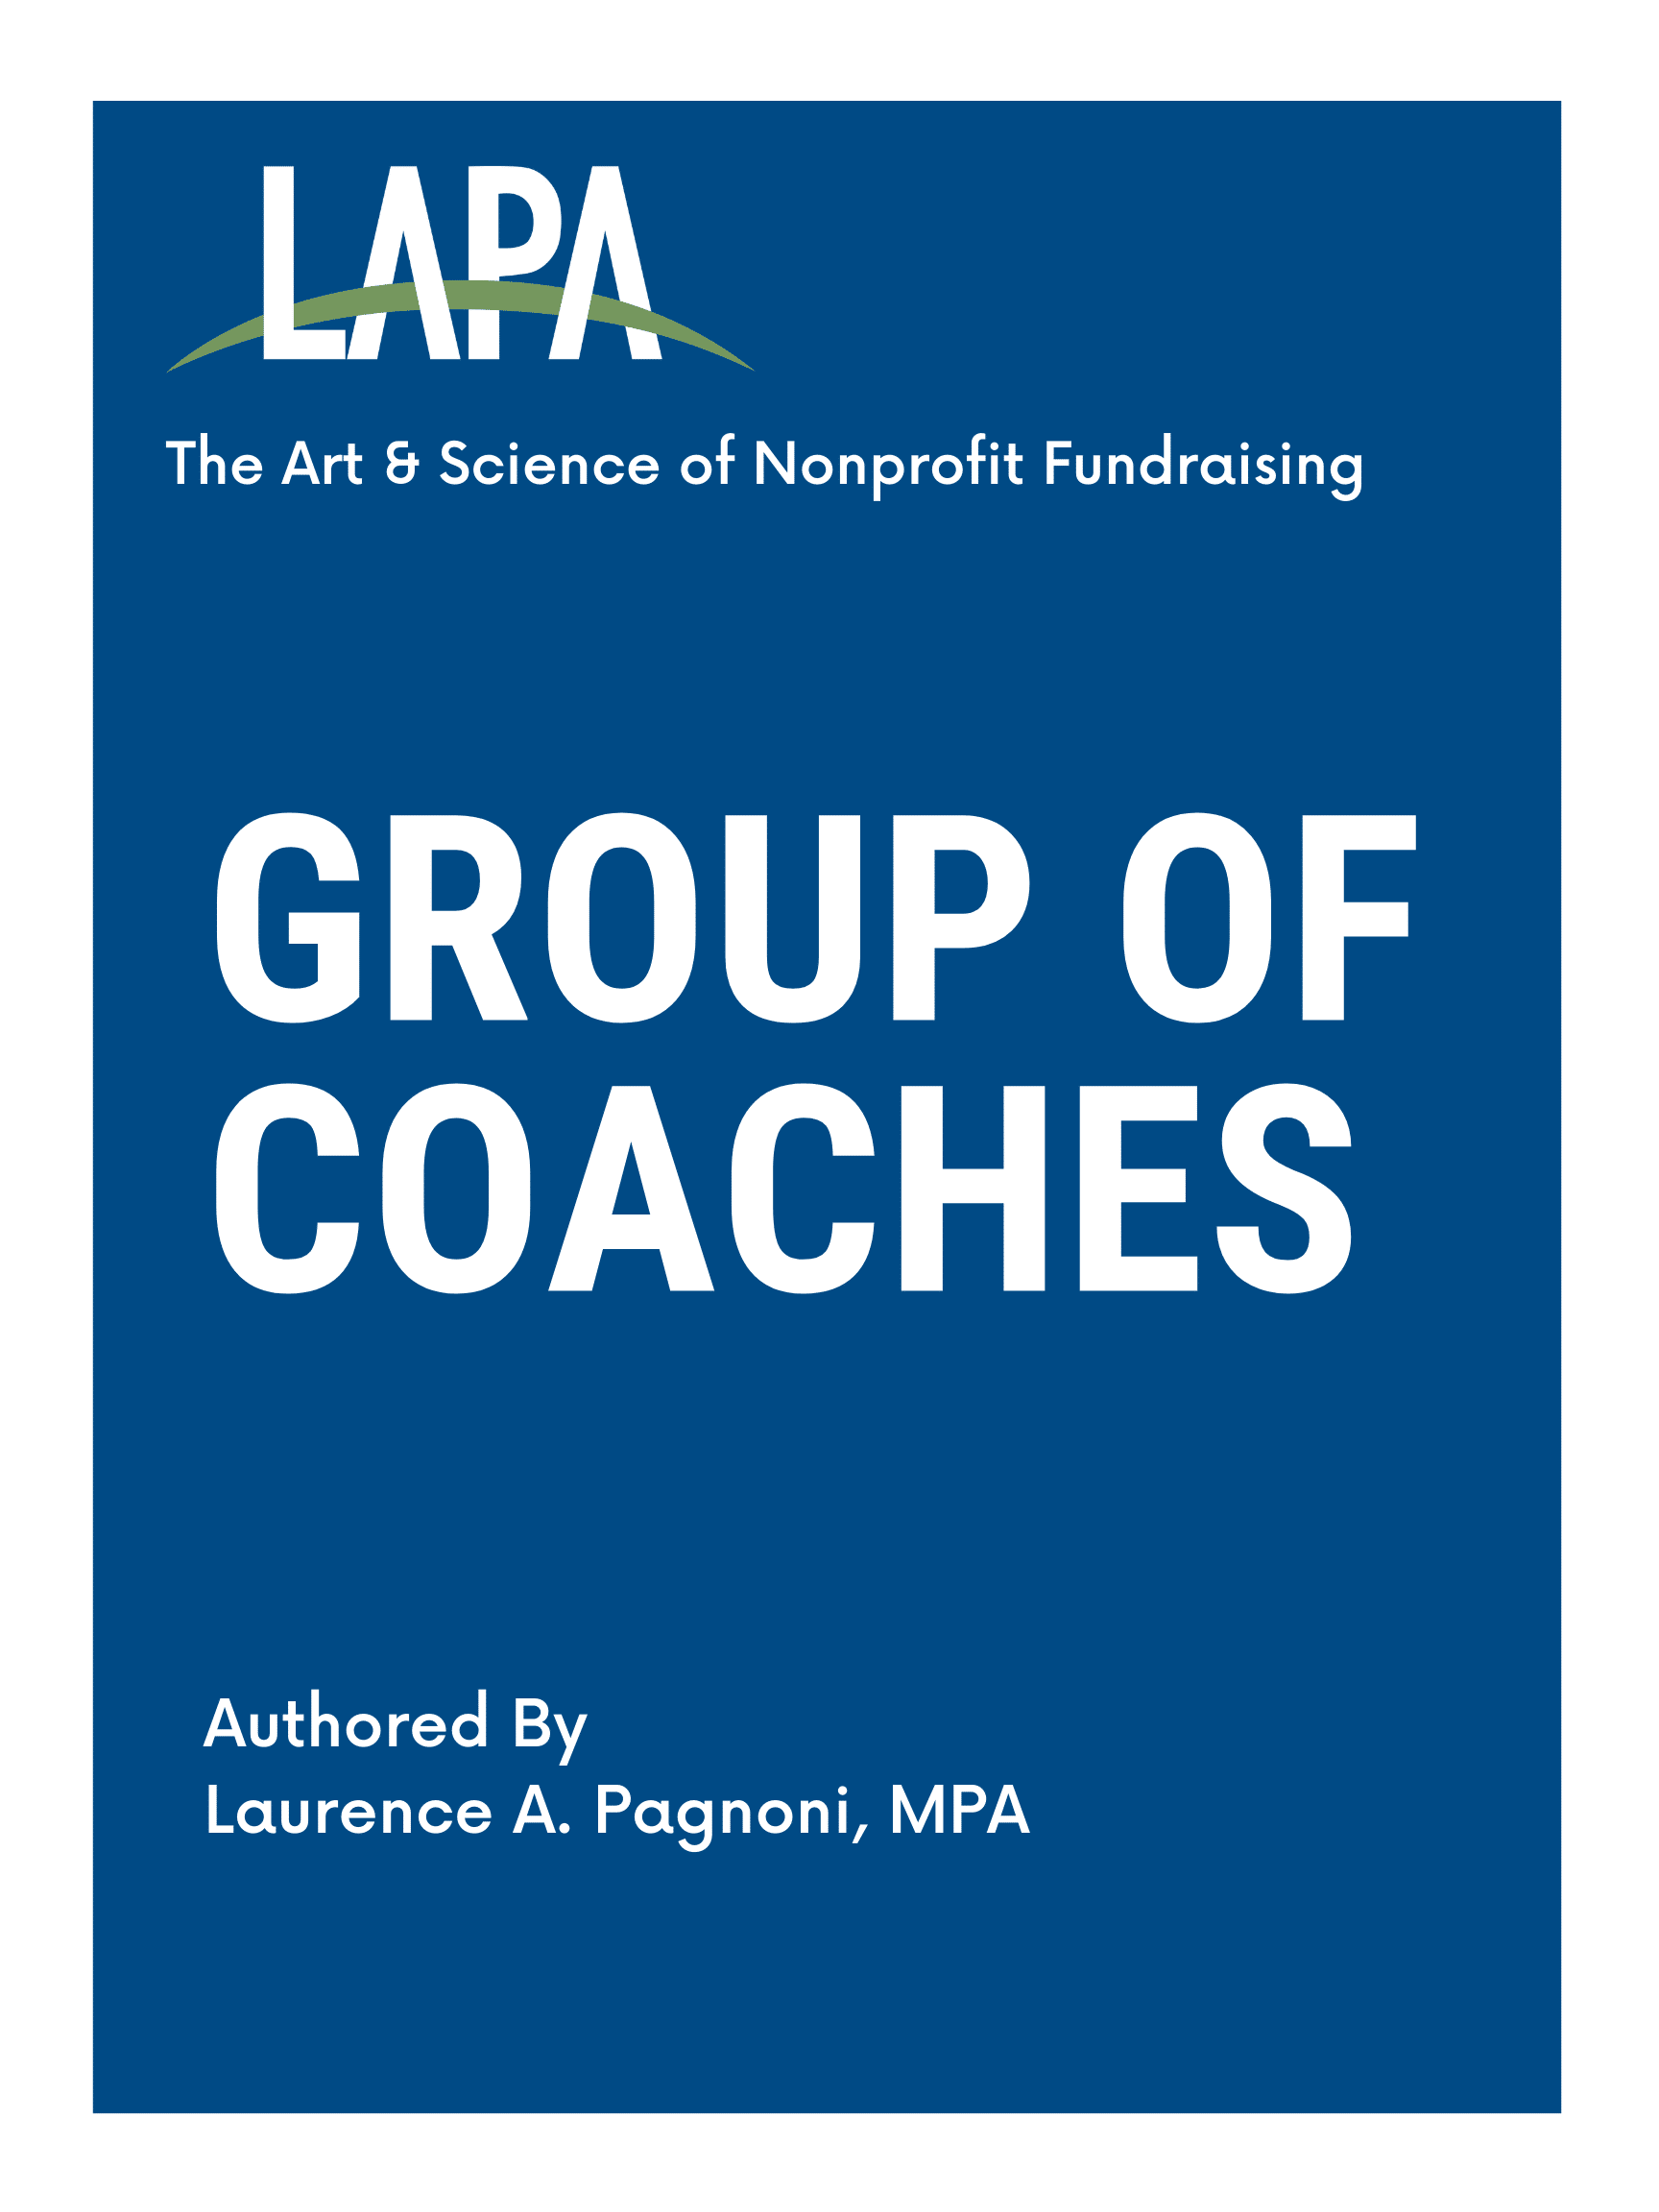 Authored By Laurence A. Pagnoni, MPA